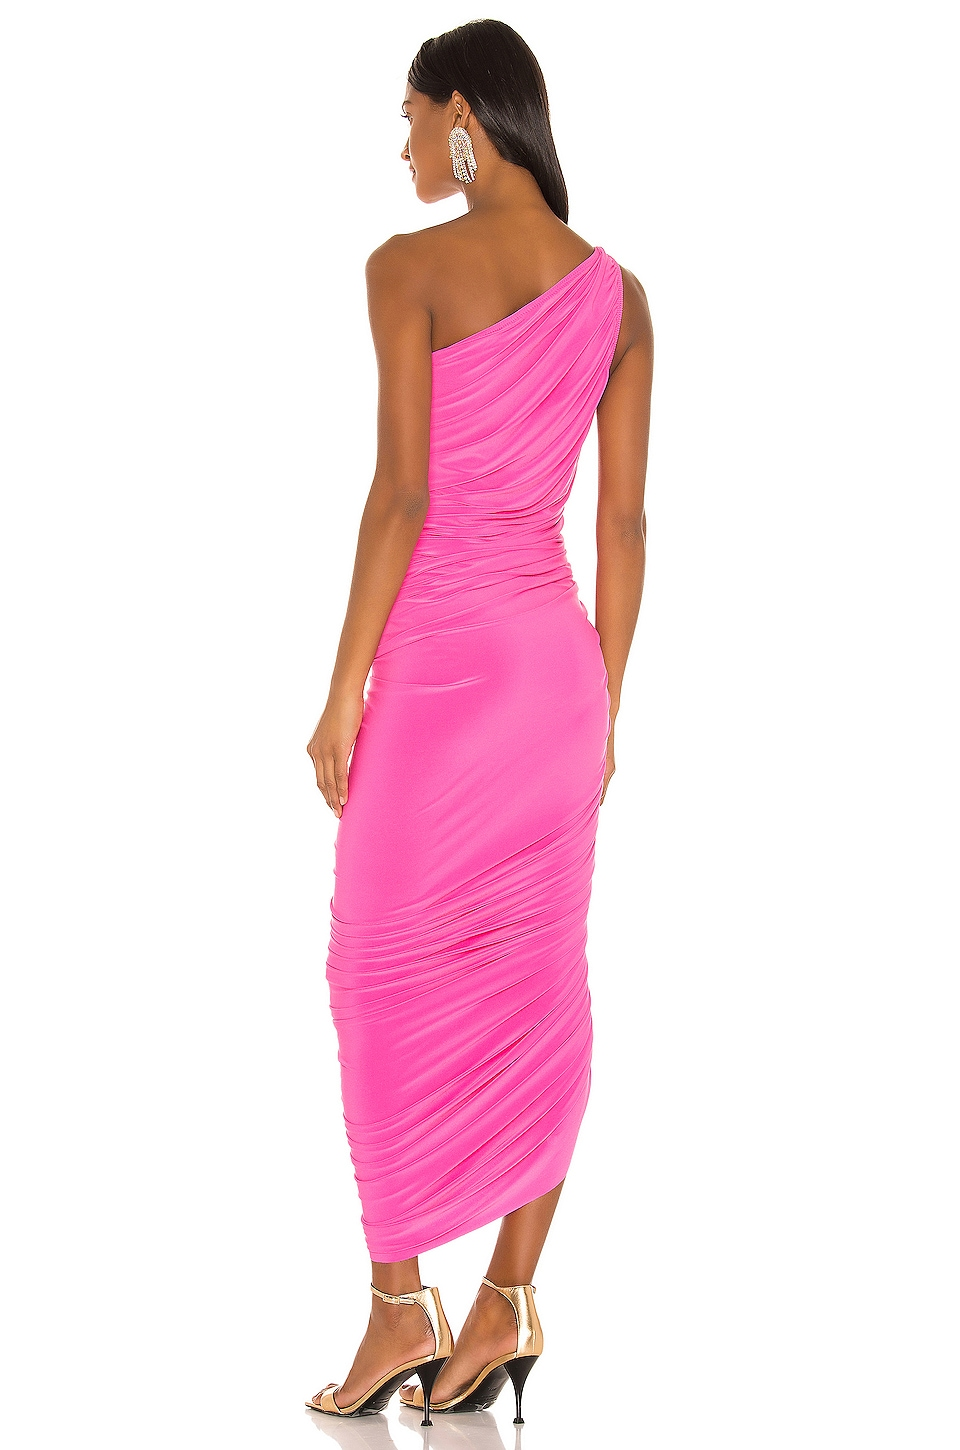 X REVOLVE Diana Gown, view 3, click to view large image.